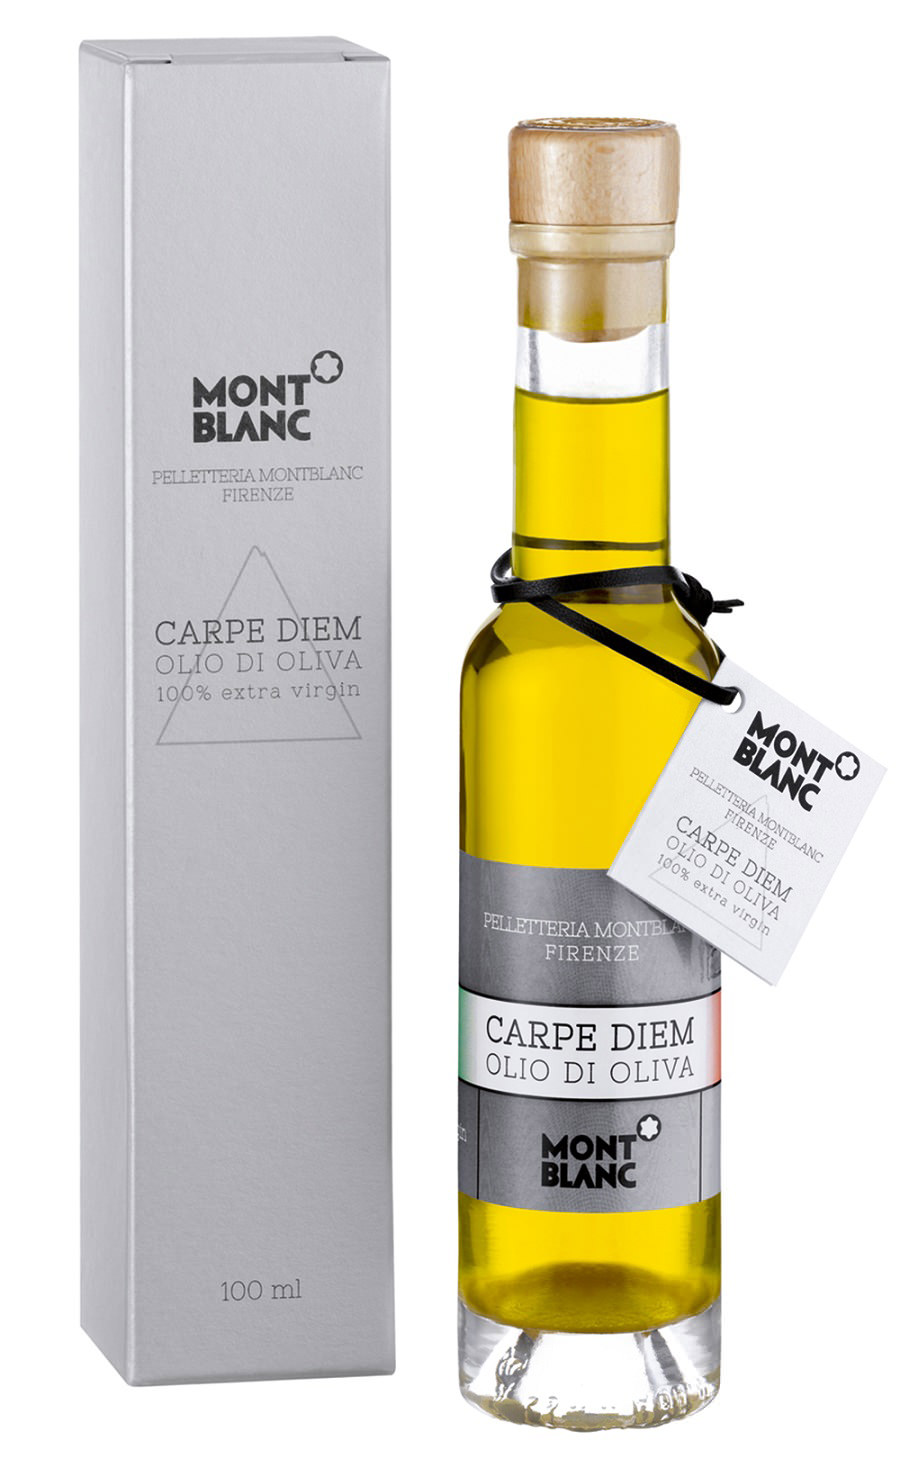 when-sustainability-teambuilding-and-fine-european-craftsmanship-meet-in-florence-montblanc-carpe-diem-olive-oil